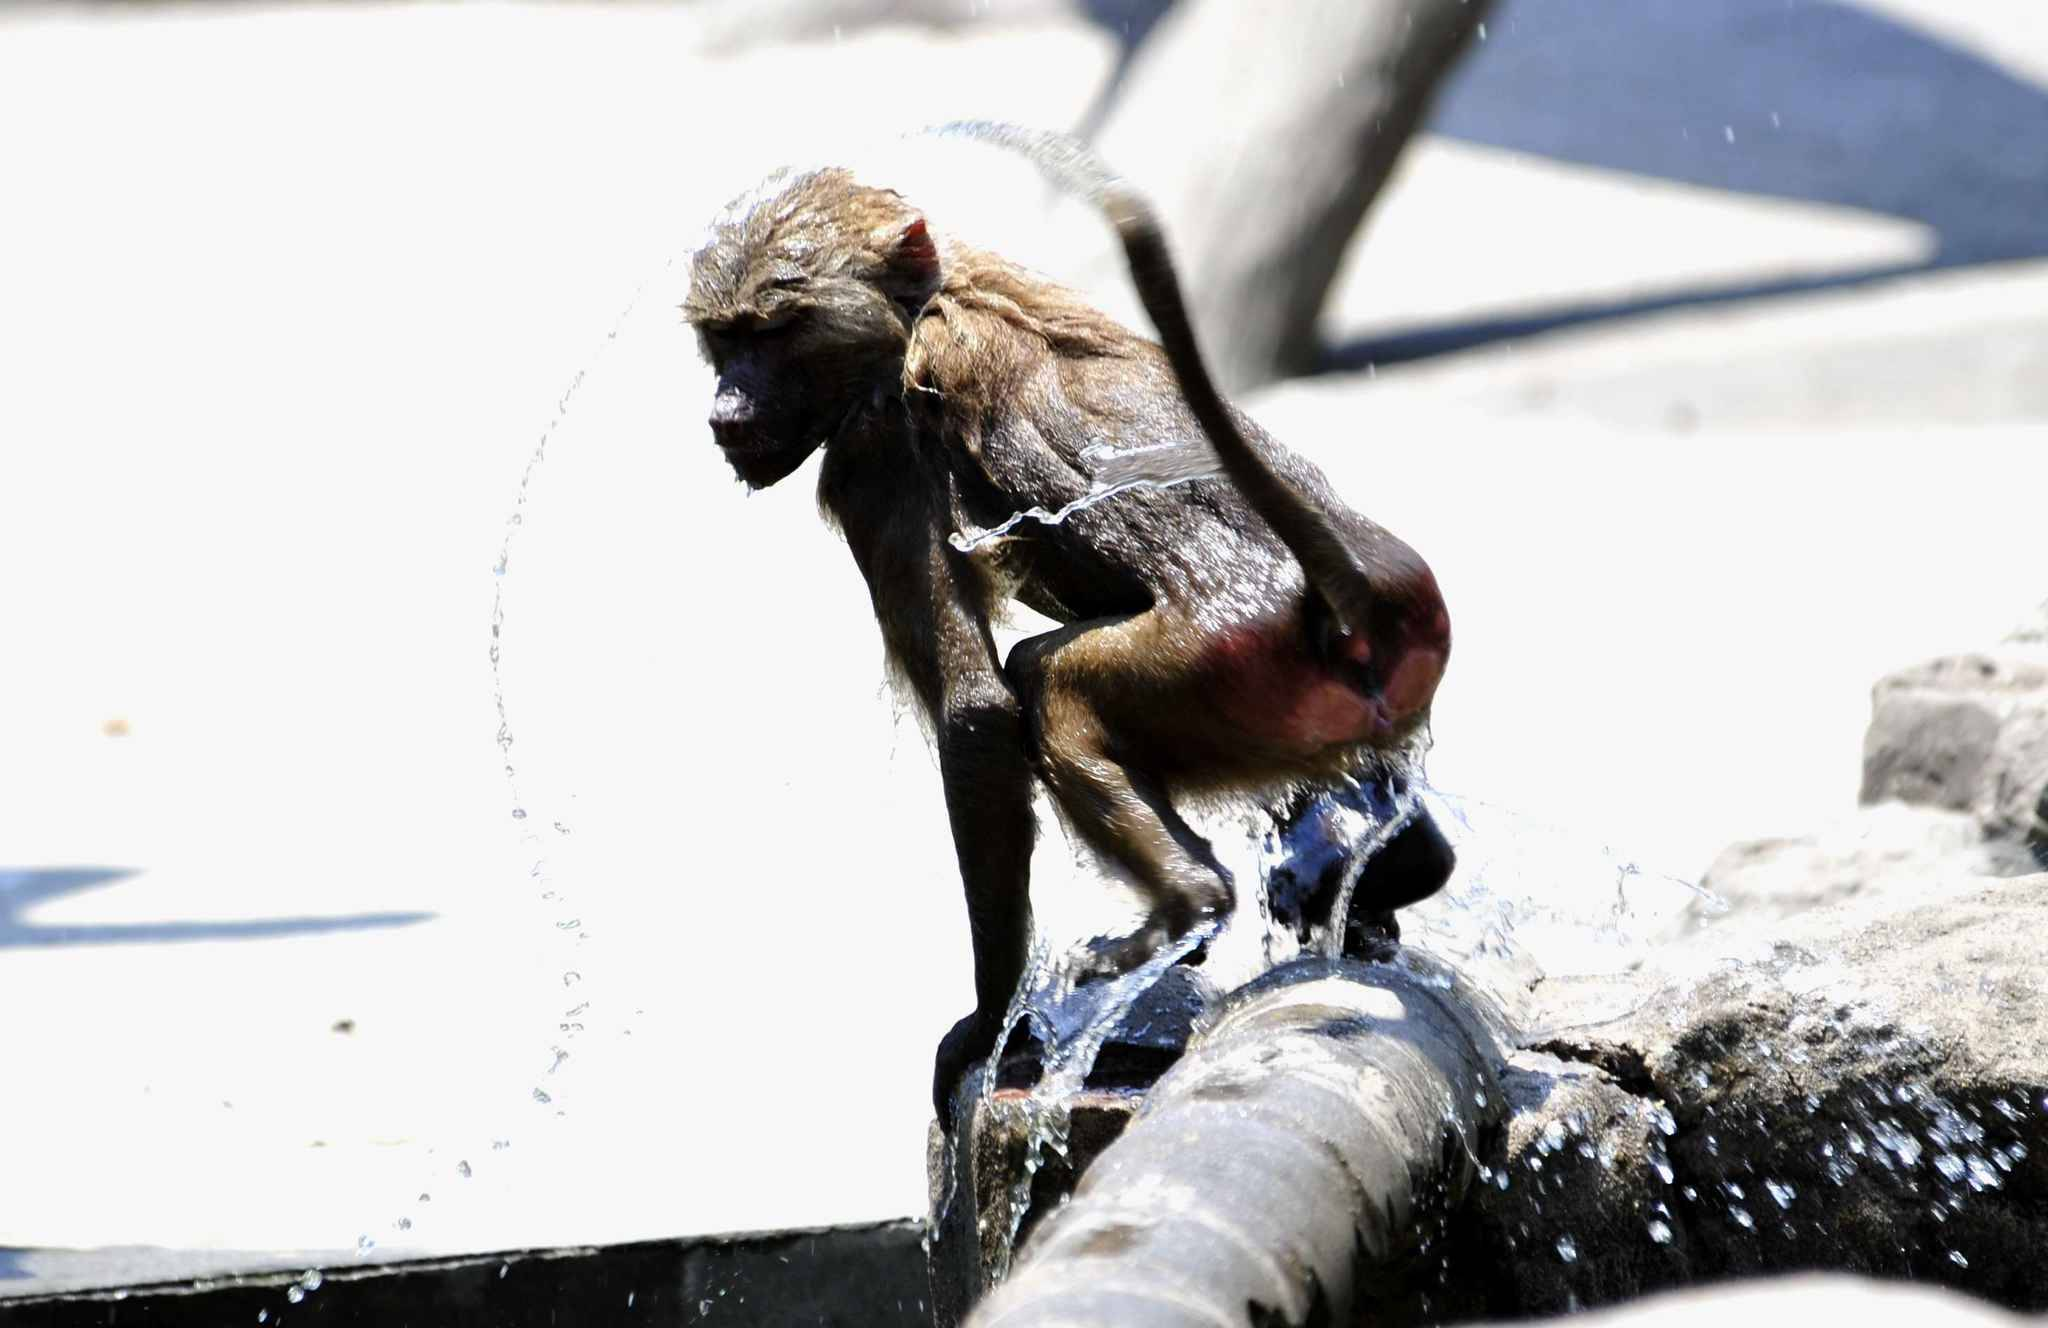 (170721) -- SHANGHAI, July 21, 2017 (Xinhua) -- A baboon plays water at Shanghai Zoo in east China's Shanghai, July 21, 2017. The meteorological department of east China metropolis Shanghai recorded an air temperature of 40.9 degrees Celsius (105.6 degrees Fahrenheit) at around 2 p.m. Friday, the highest on record in the city in 145 years. The Shanghai Zoo has took many measures to keep the animals cool.